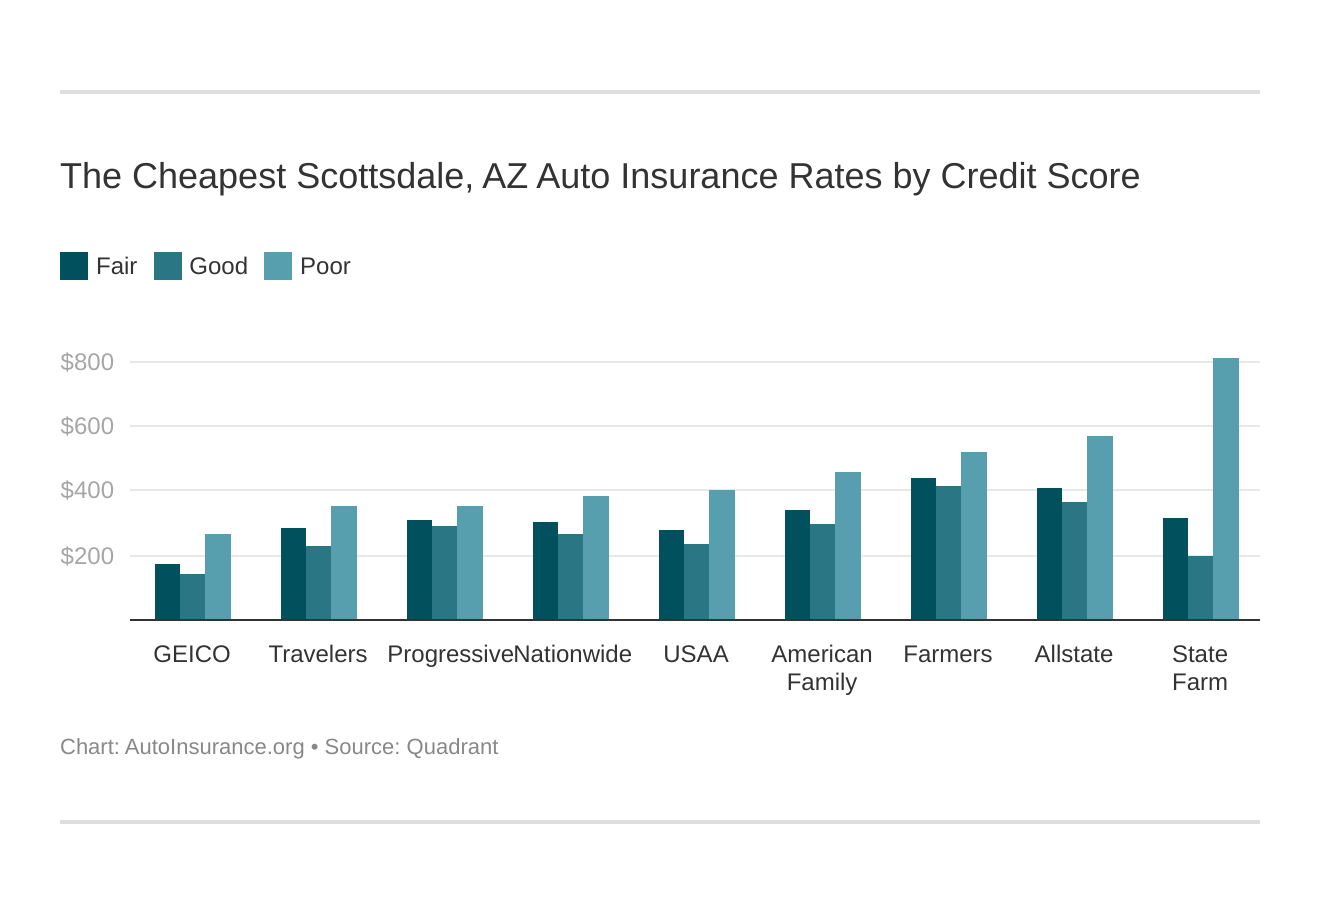 The Cheapest Scottsdale, AZ Auto Insurance Rates by Credit Score